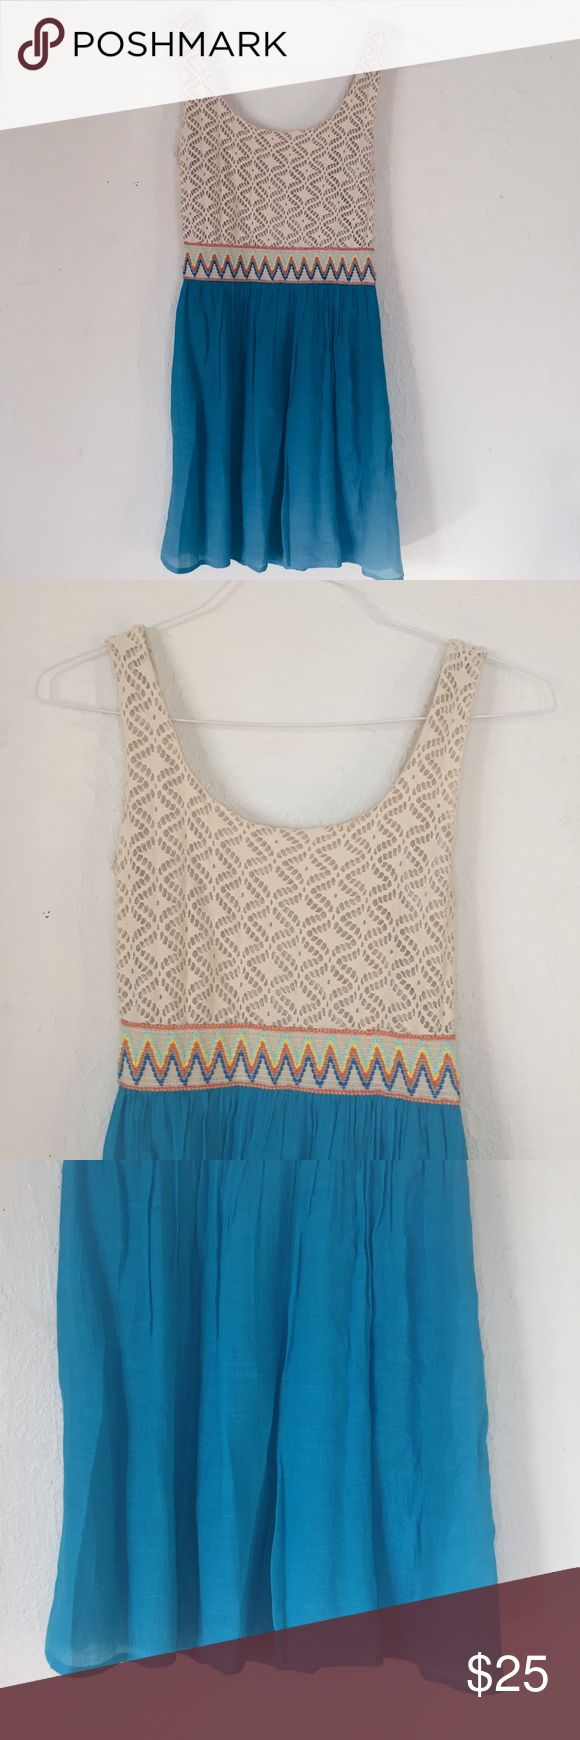 Charlotte Russe Beachy Summer Dress Charlotte Russe dress with coral blue skirt with attached slip so not see through. Top part with sandy tan colored knit fabric. Waist band with fun zig zag striped design of blue orange and yellow. Very comfortable and great for warm weather. No flaws. Offers welcome. Charlotte Russe Dresses Mini